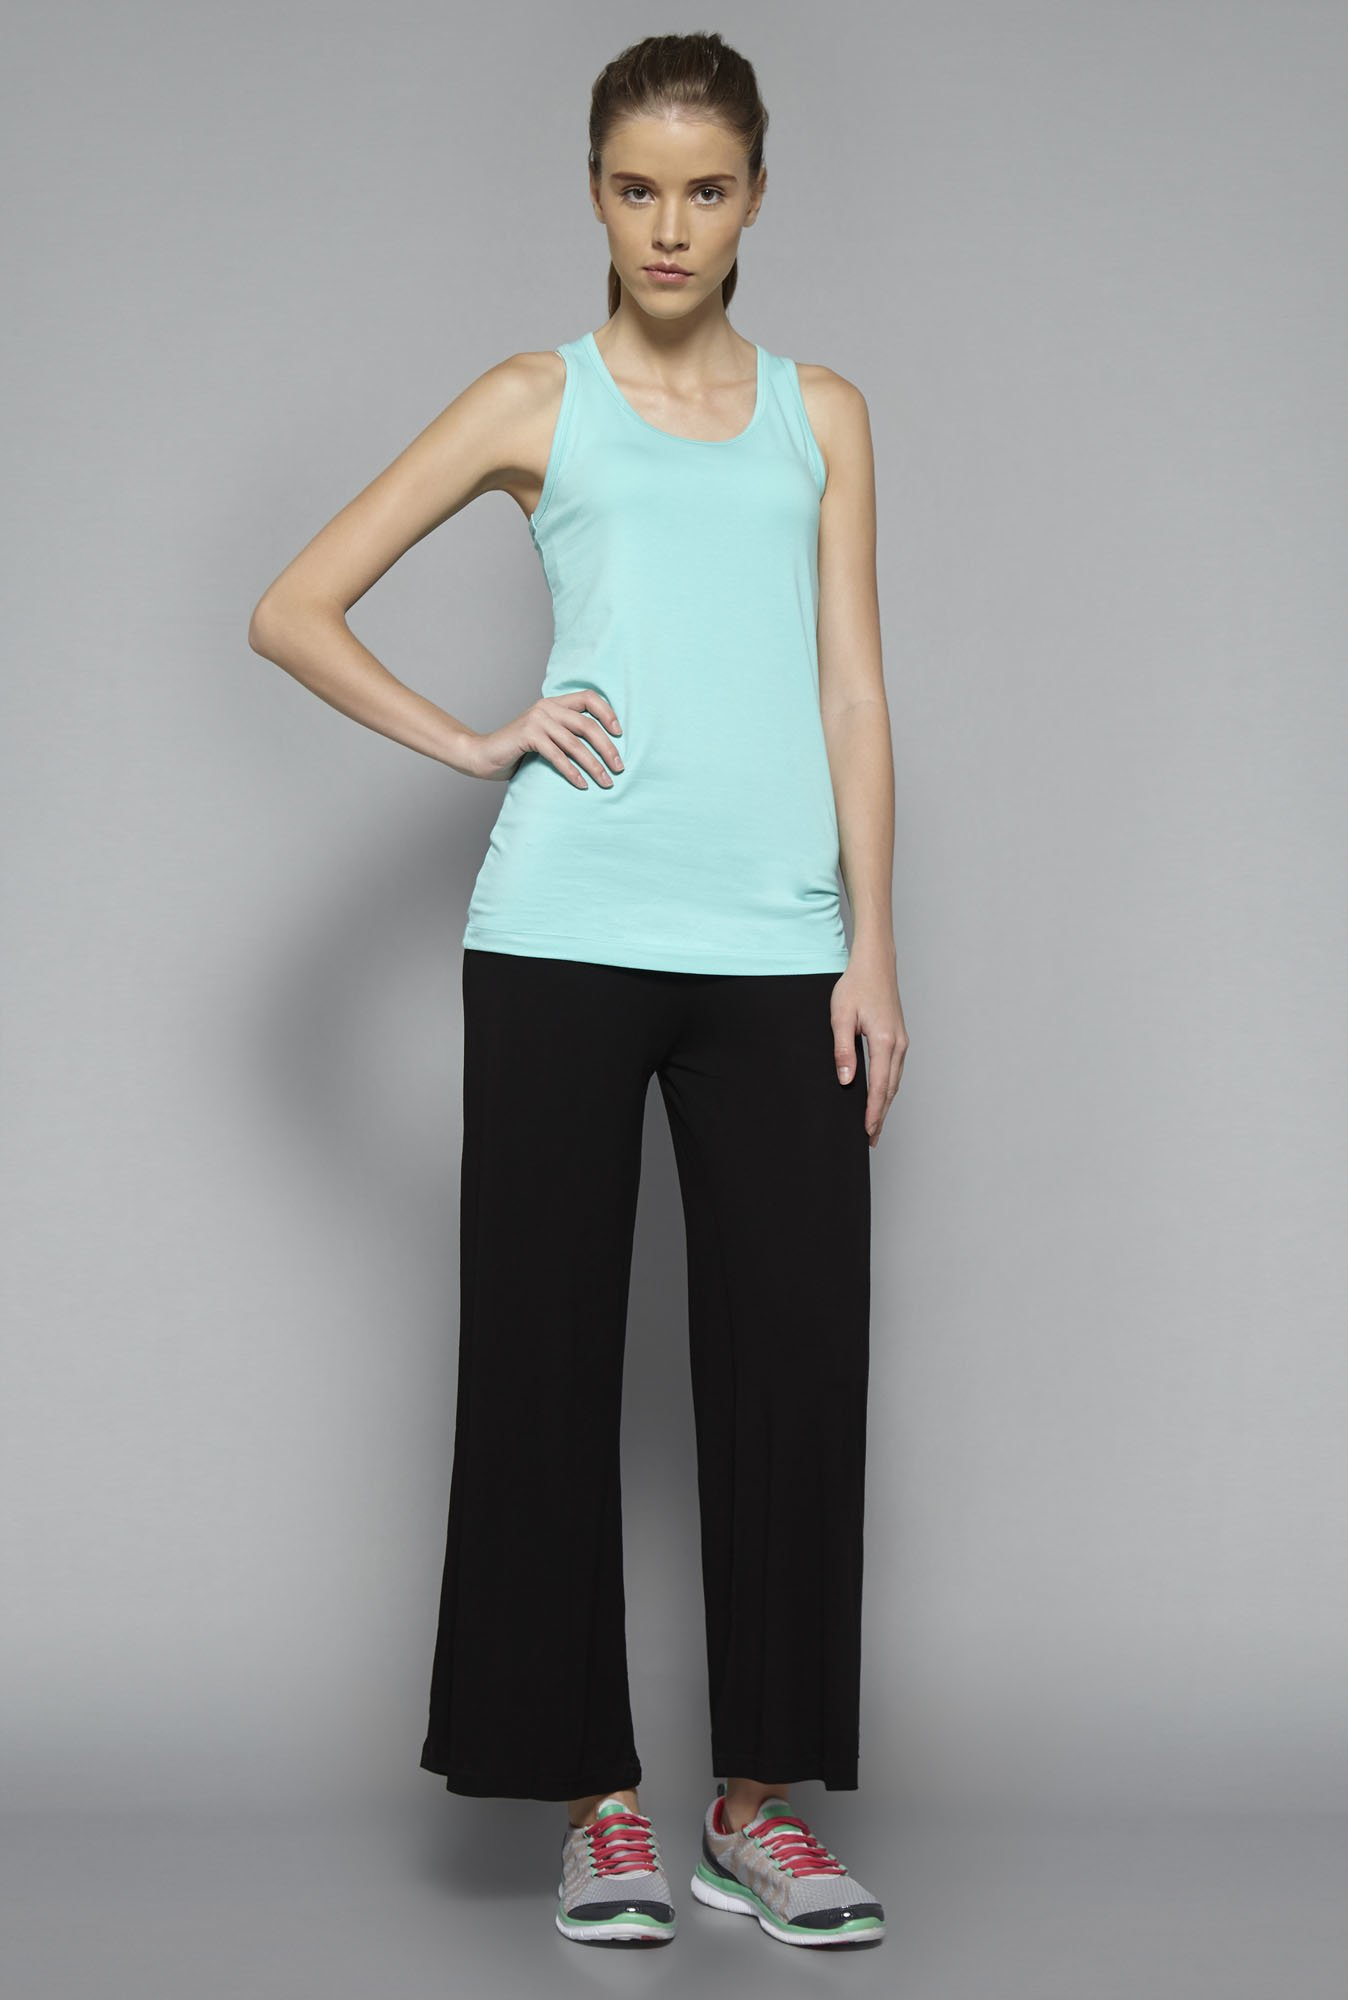 Westsport by Westside Turquoise Kate Tank Top